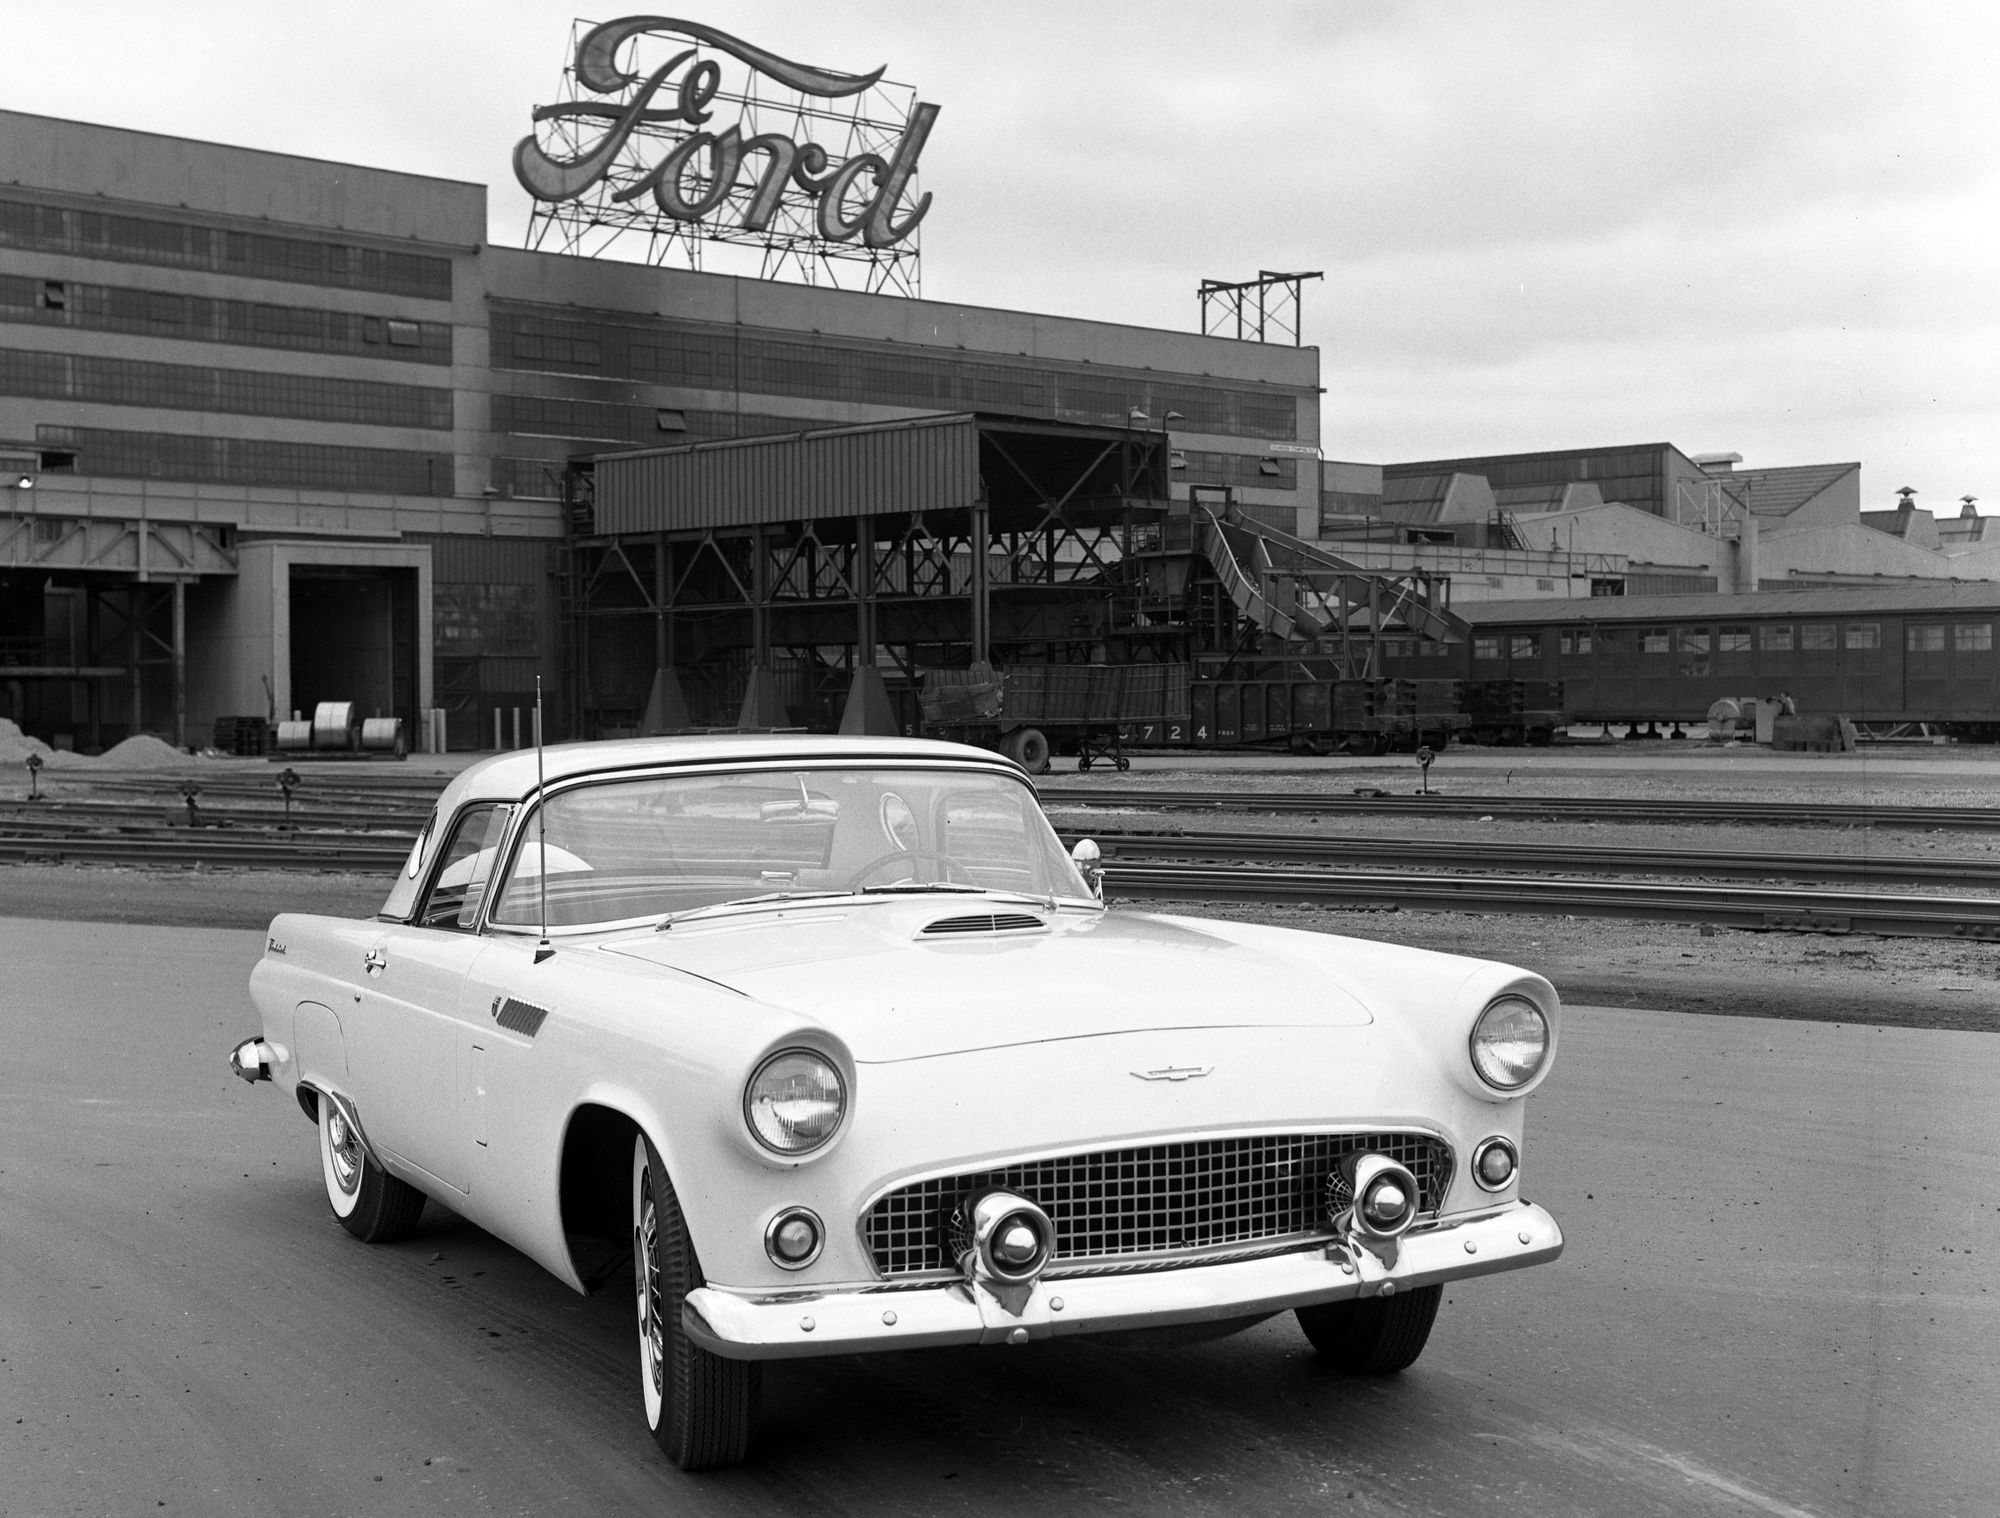 Stolen 1956 Ford Thunderbird Recovered